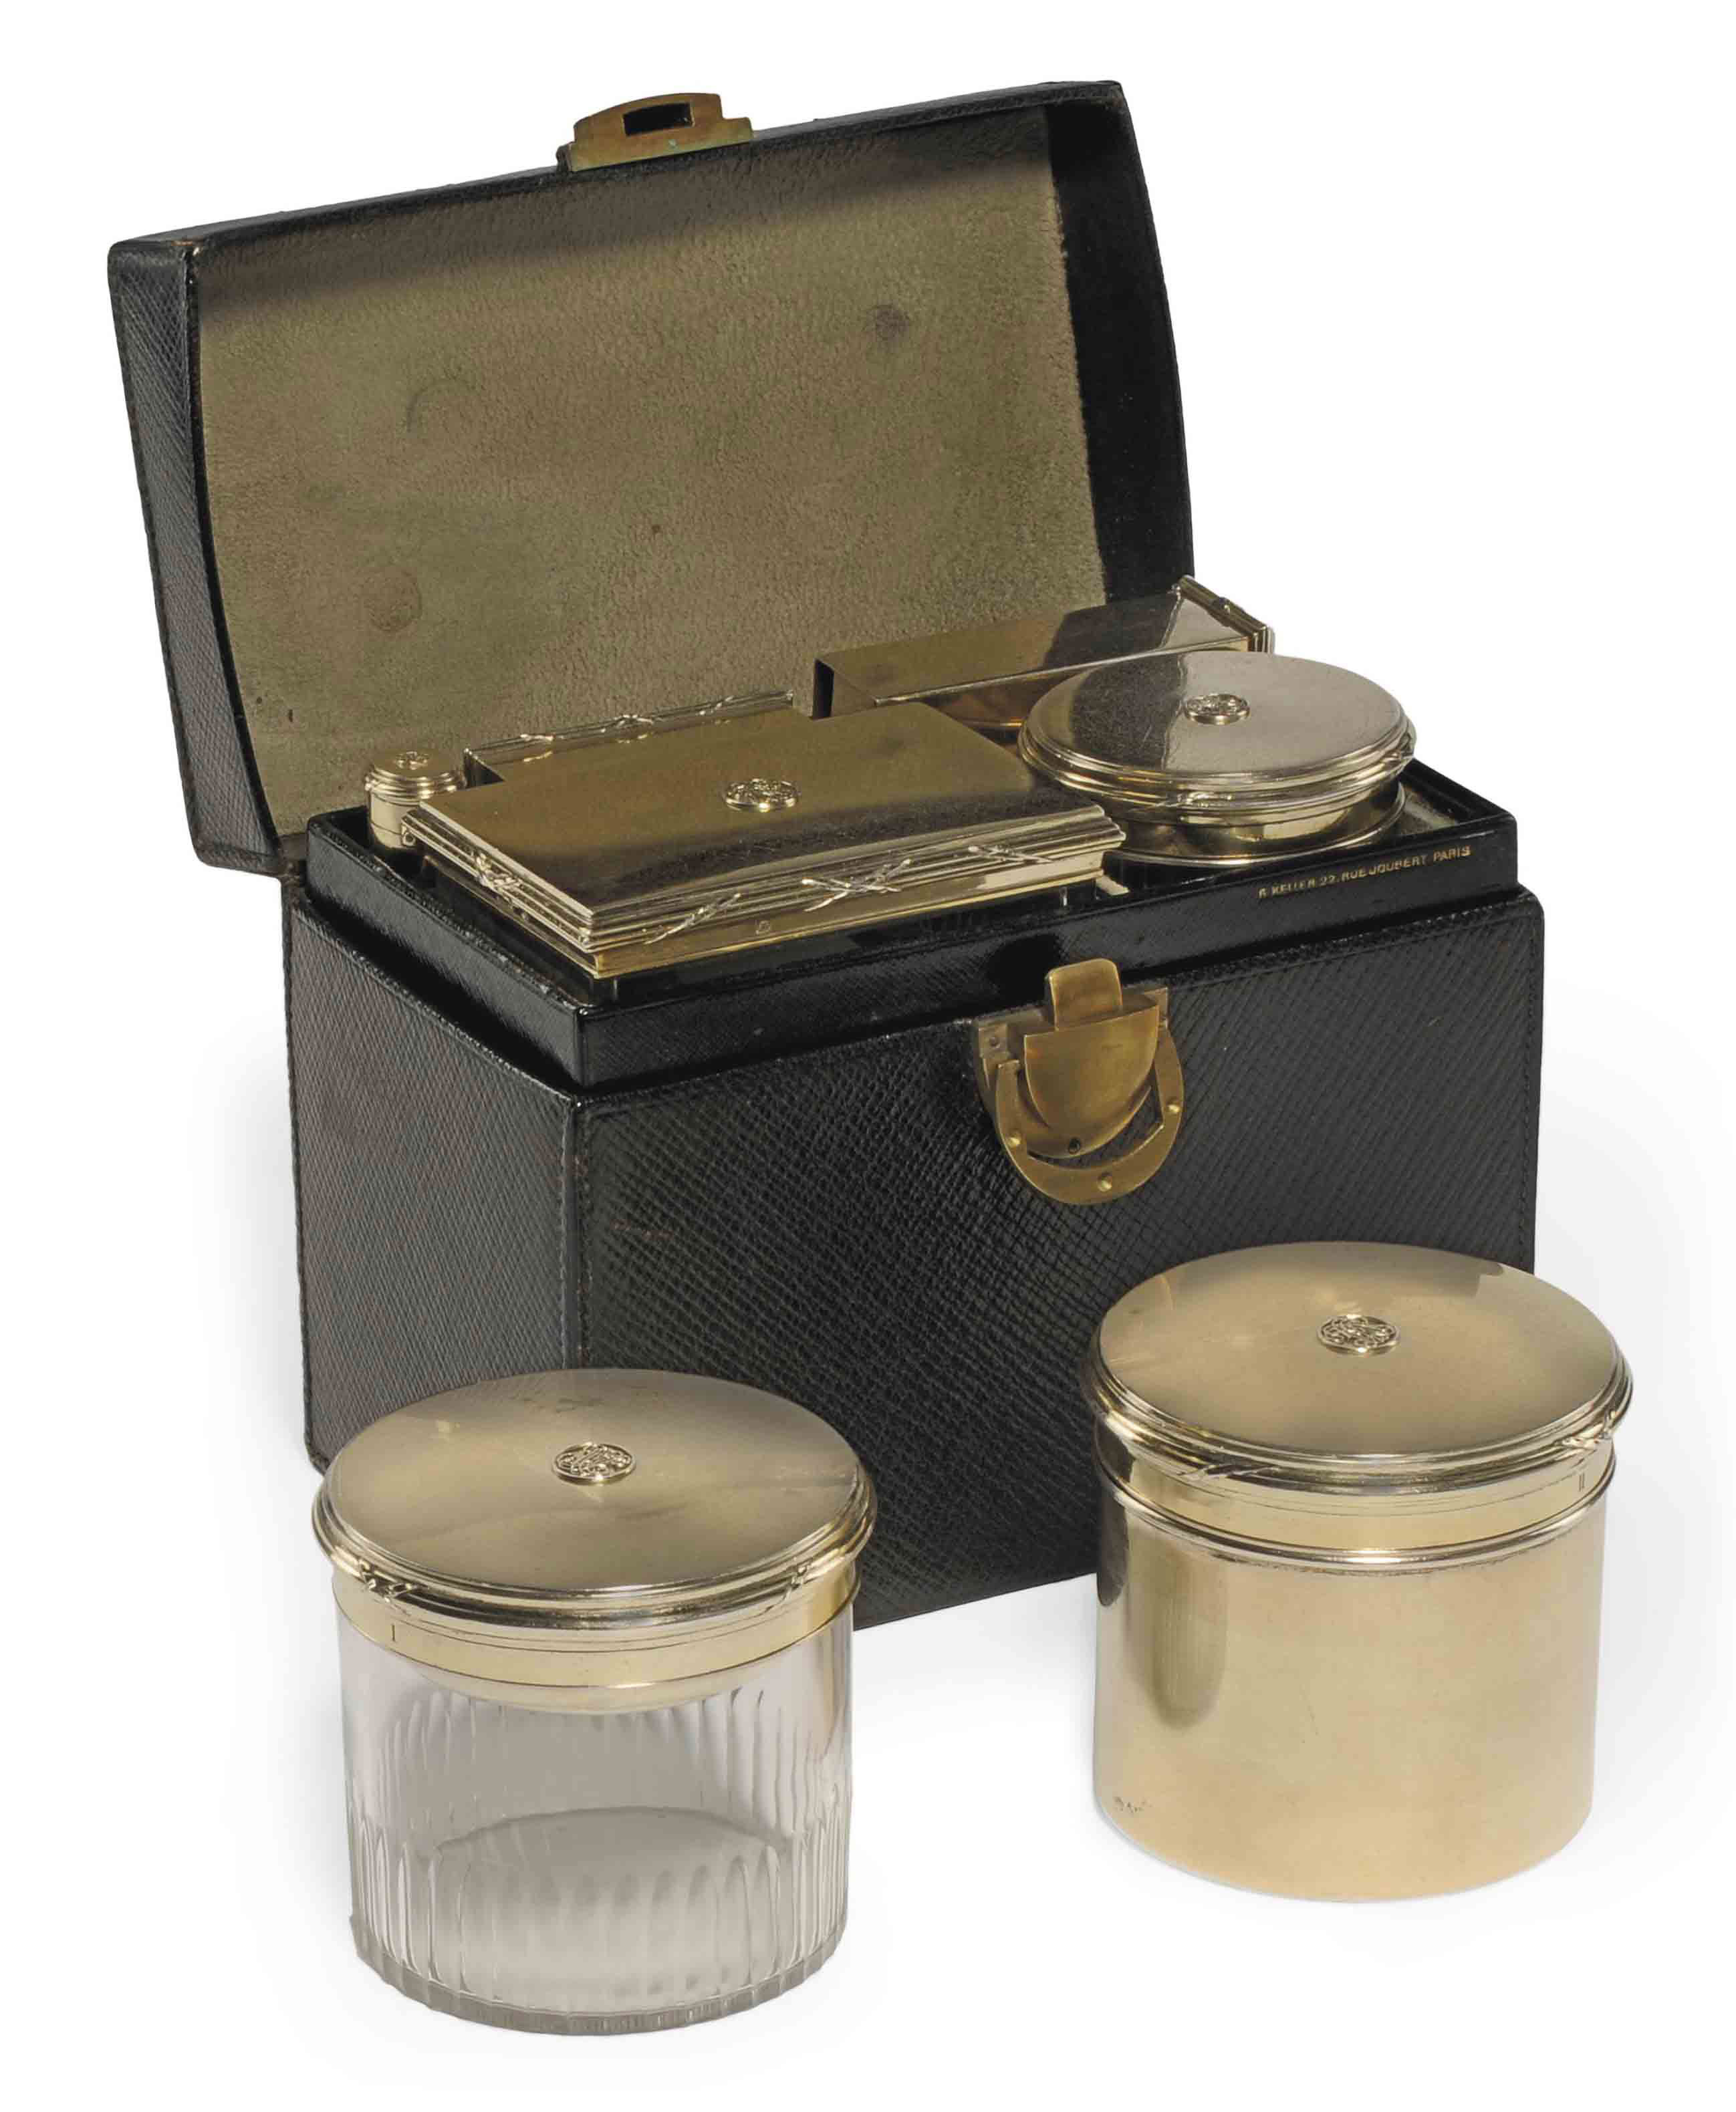 A FRENCH SILVER-GILT TRAVELLING DRESSING-TABLE SET